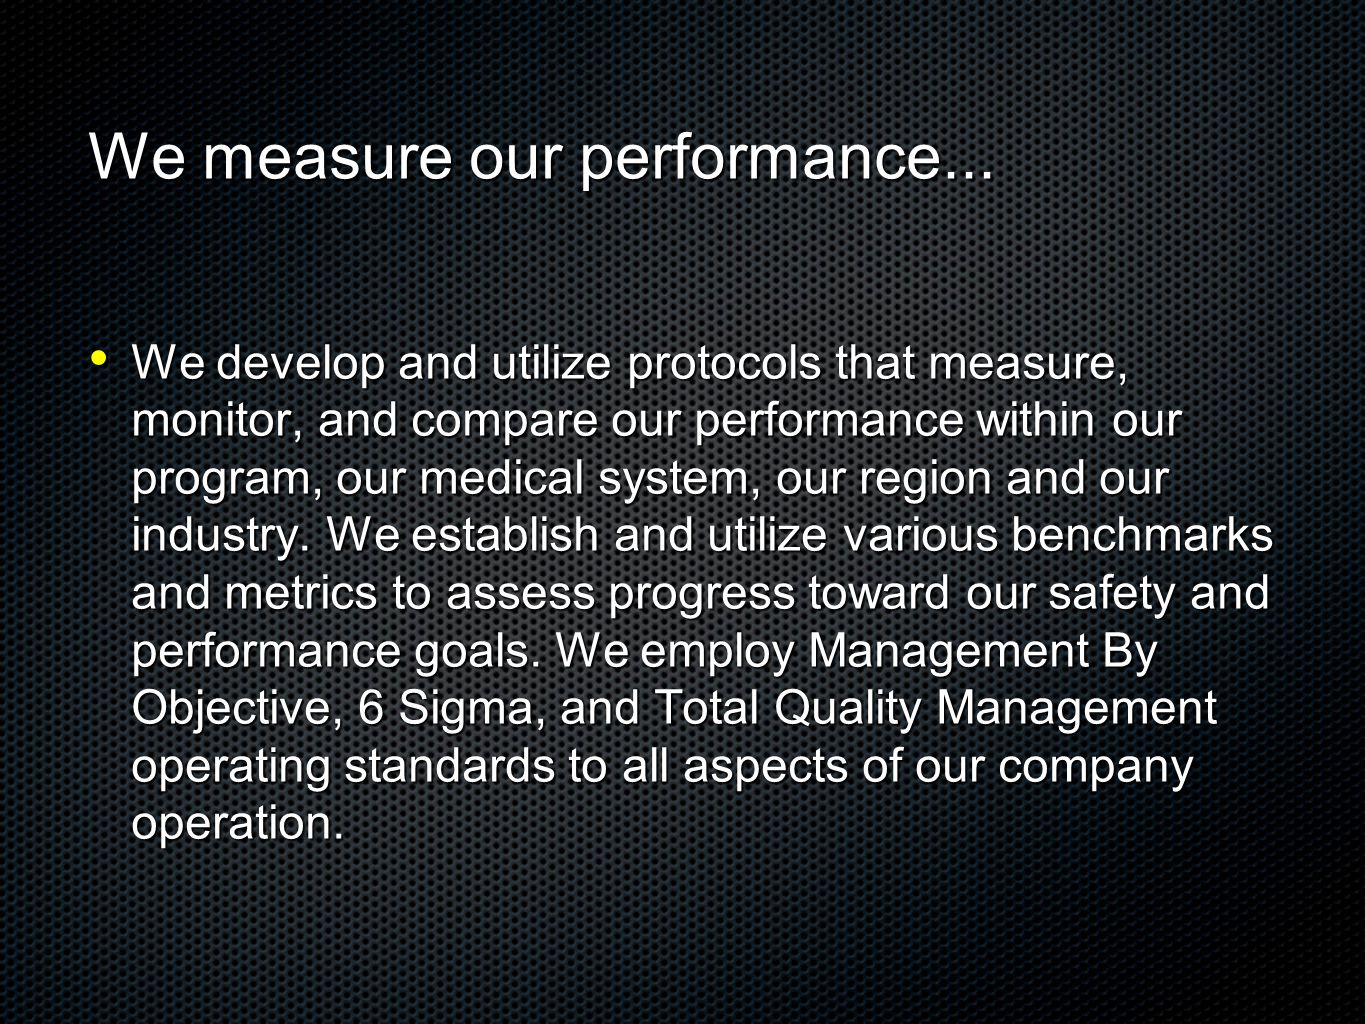 We measure our performance...